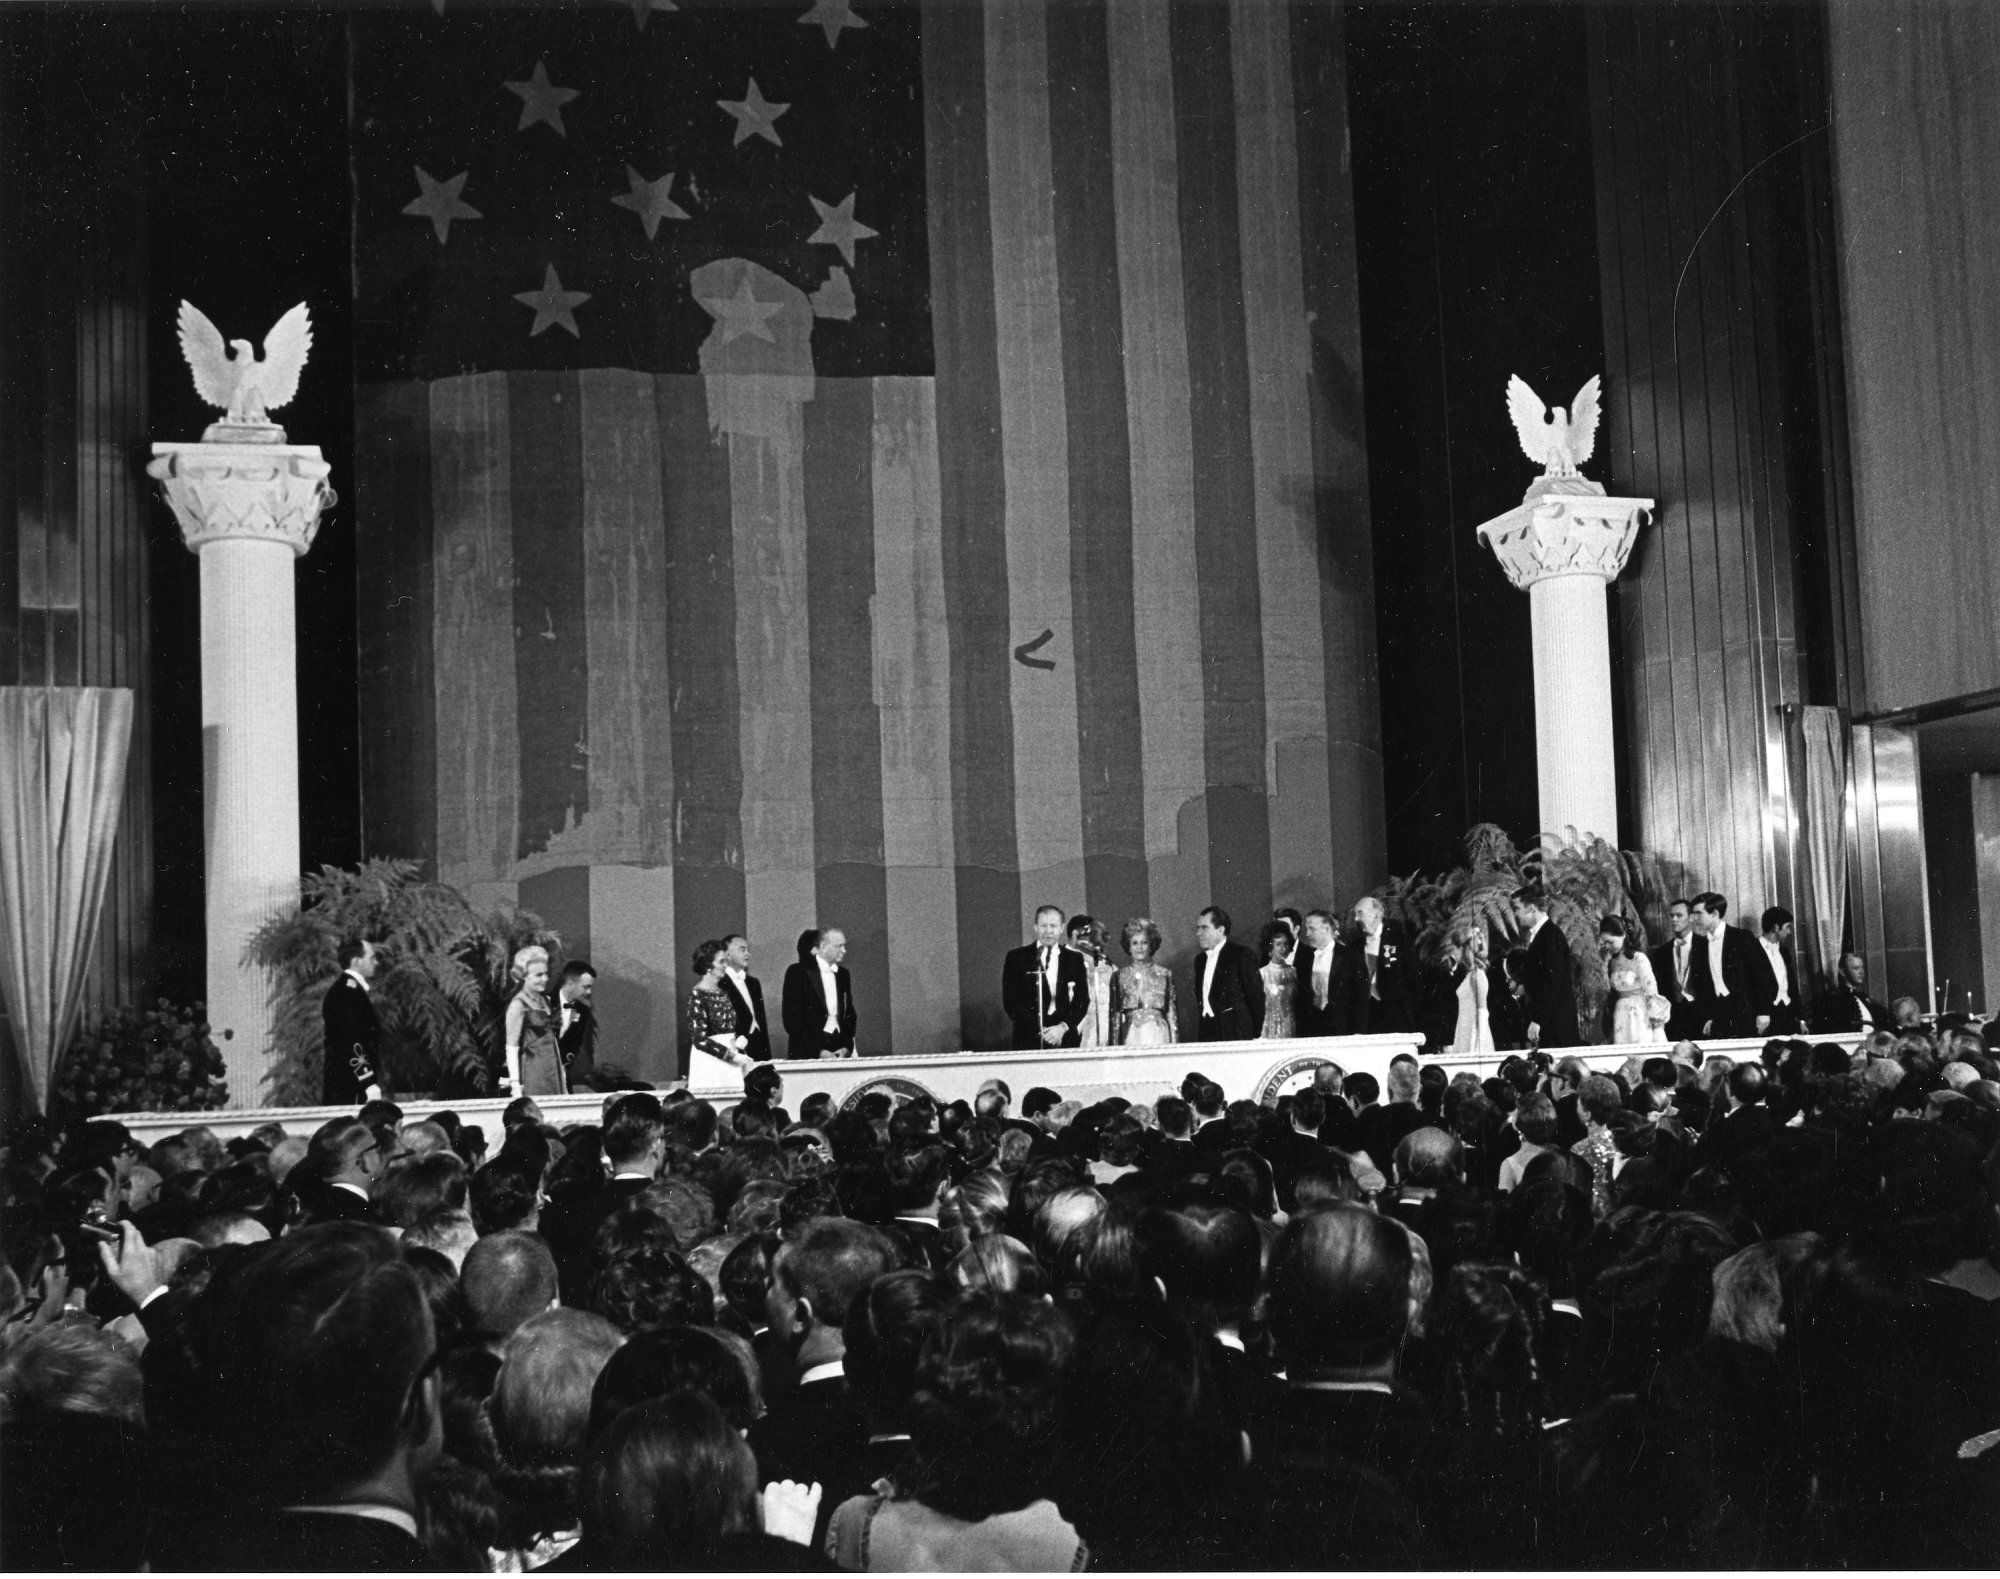 The Museum hosted President Richard Nixon's inaugural ball on January 20, 1969. Honored guests stand at the podium in front of the Star-Spangled Banner. Photo courtesy of the Smithsonian Institution Archives.